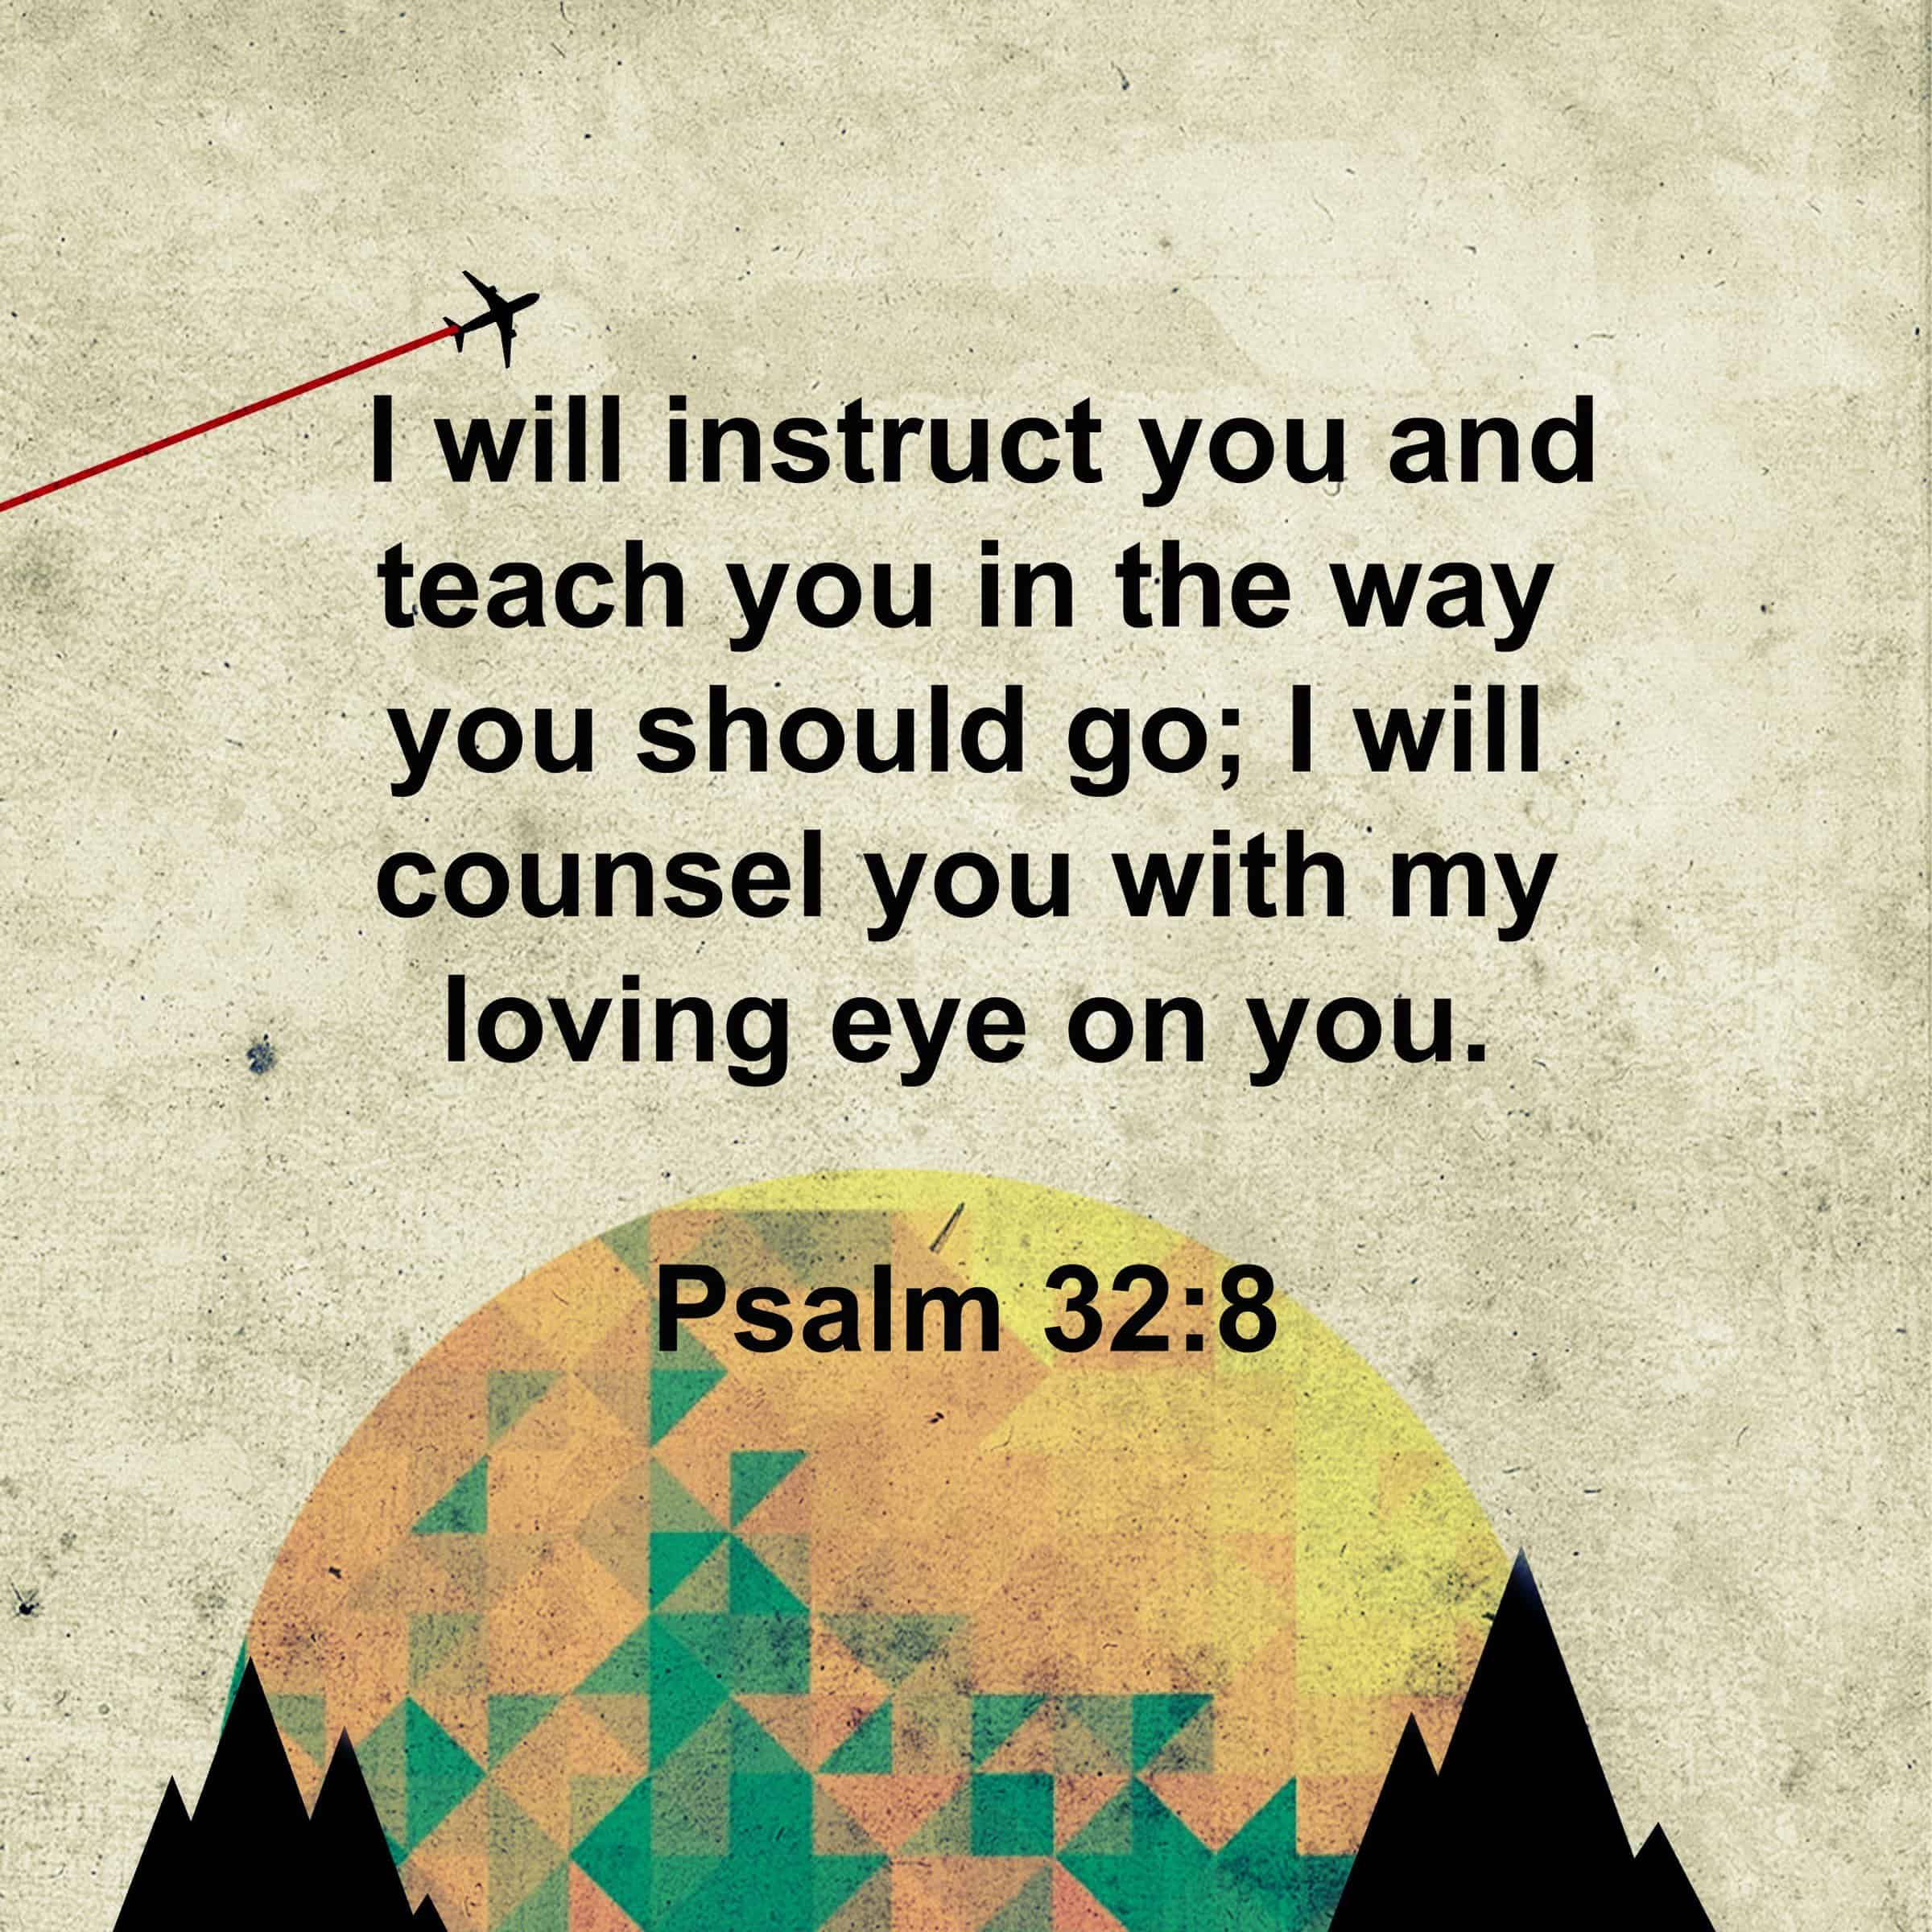 I will instruct you and teach you in the way you should go; I will counsel you with my loving eye on you. - Psalm 32:8